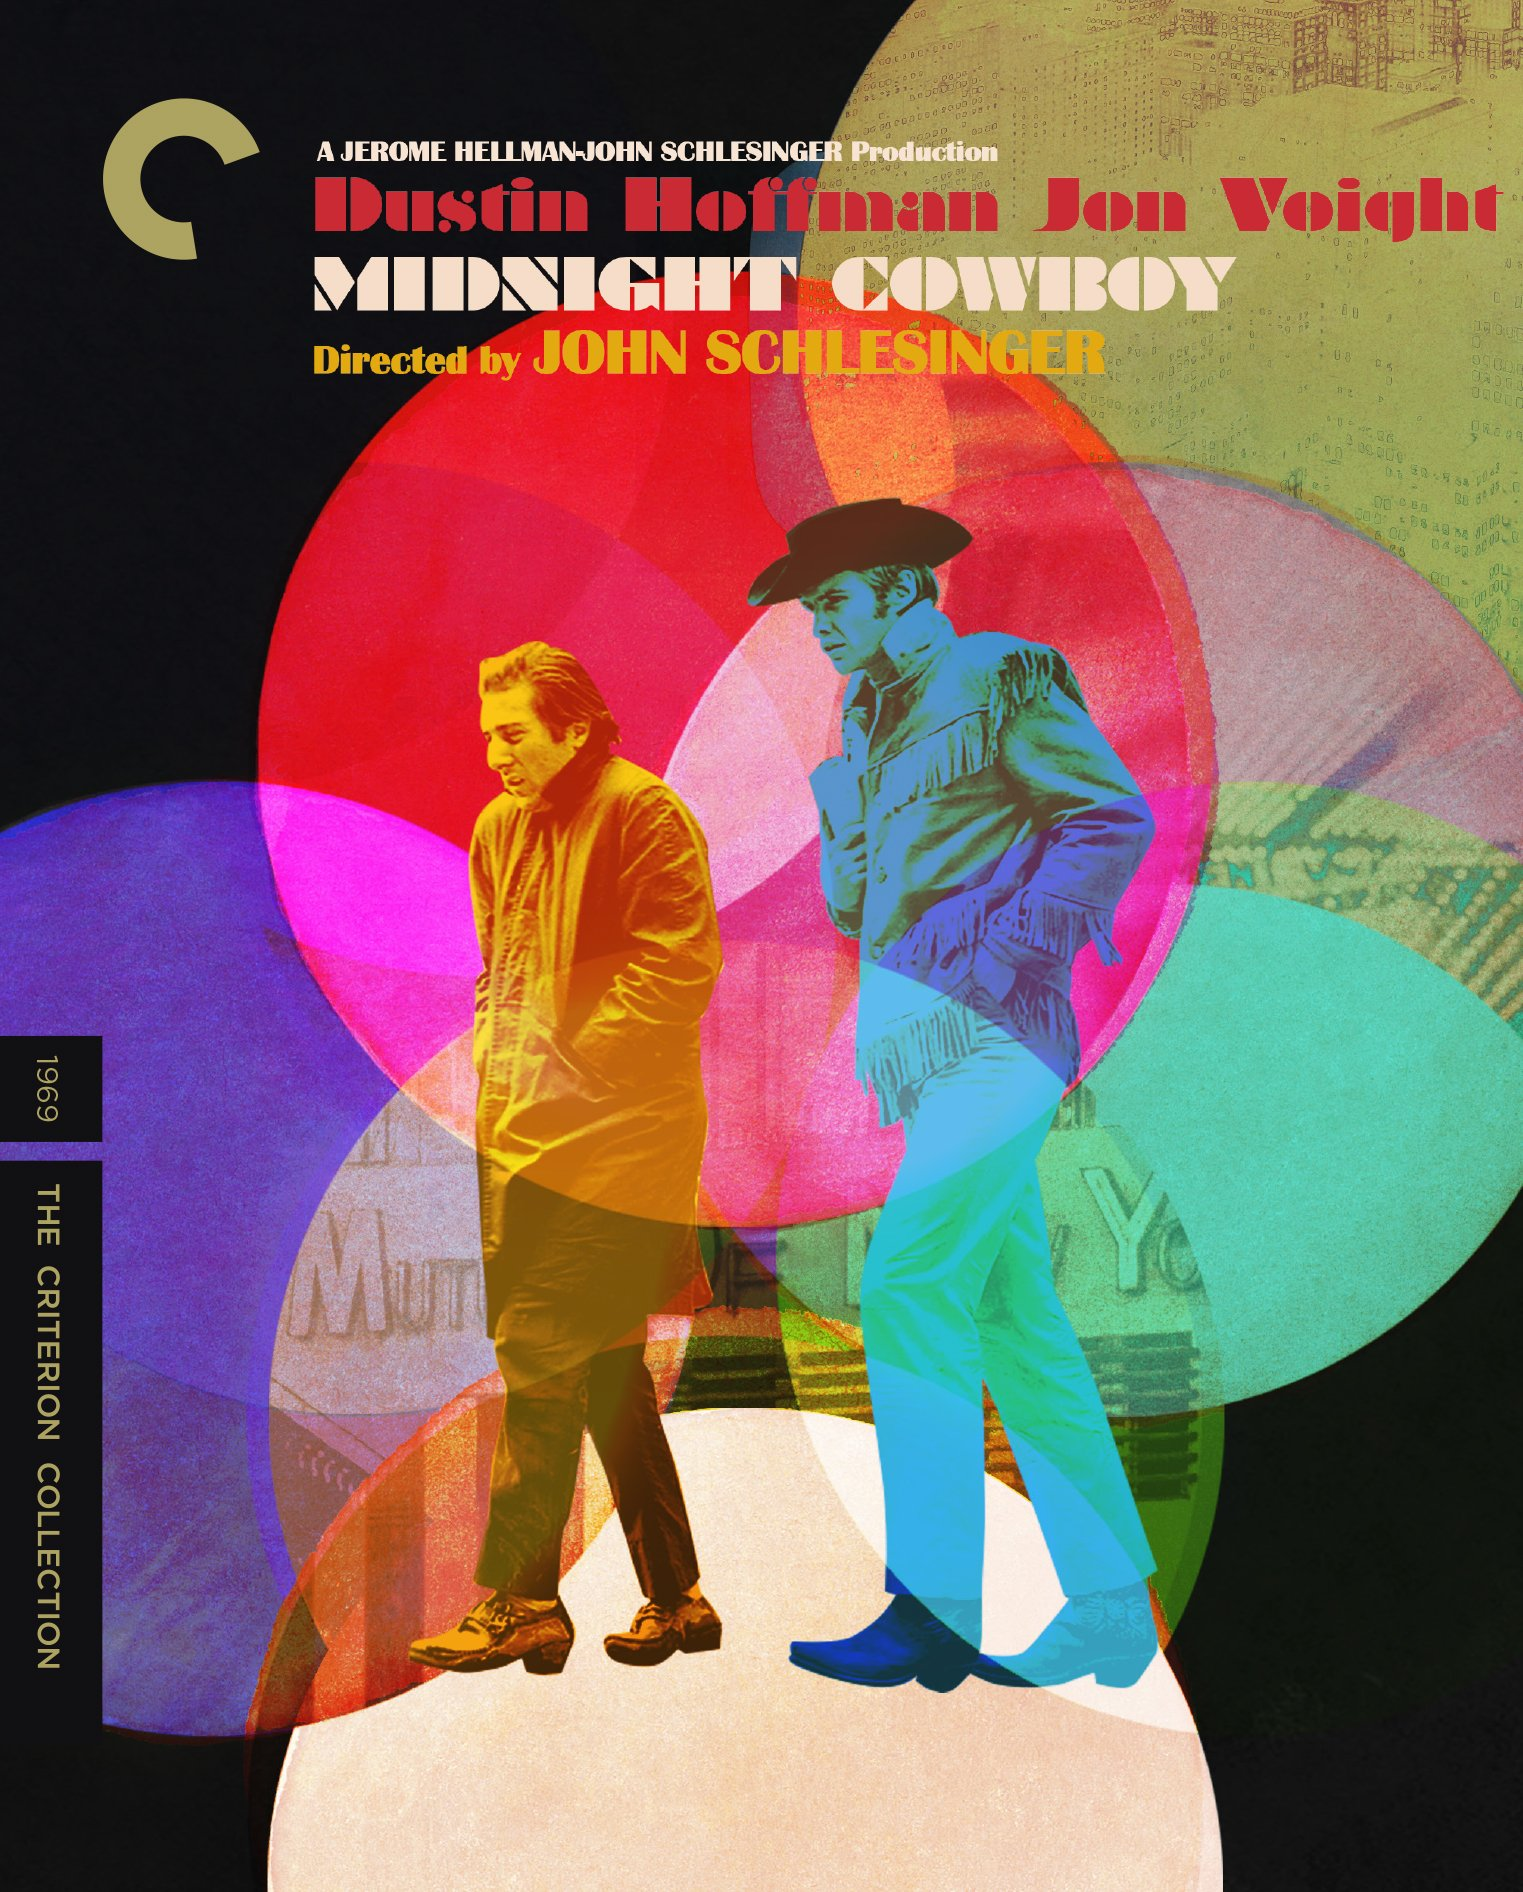 Blu-ray : Midnight Cowboy (criterion Collection) (Special Edition, 4K Mastering, Restored, Widescreen, Subtitled)